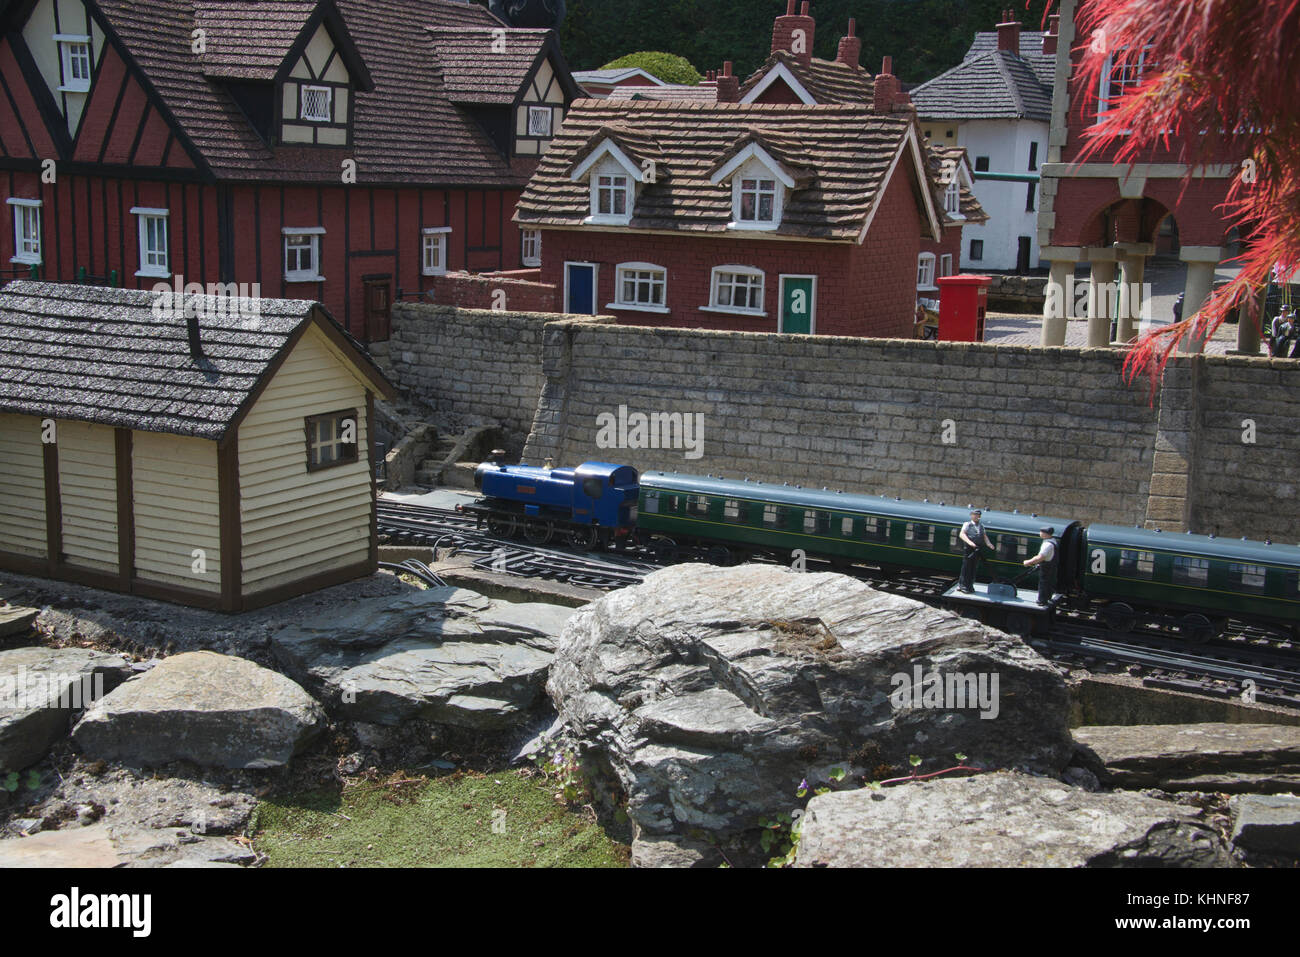 Train passing through village Bekonscot Model Village Beaconsfield Buckinghamshire England - Stock Image